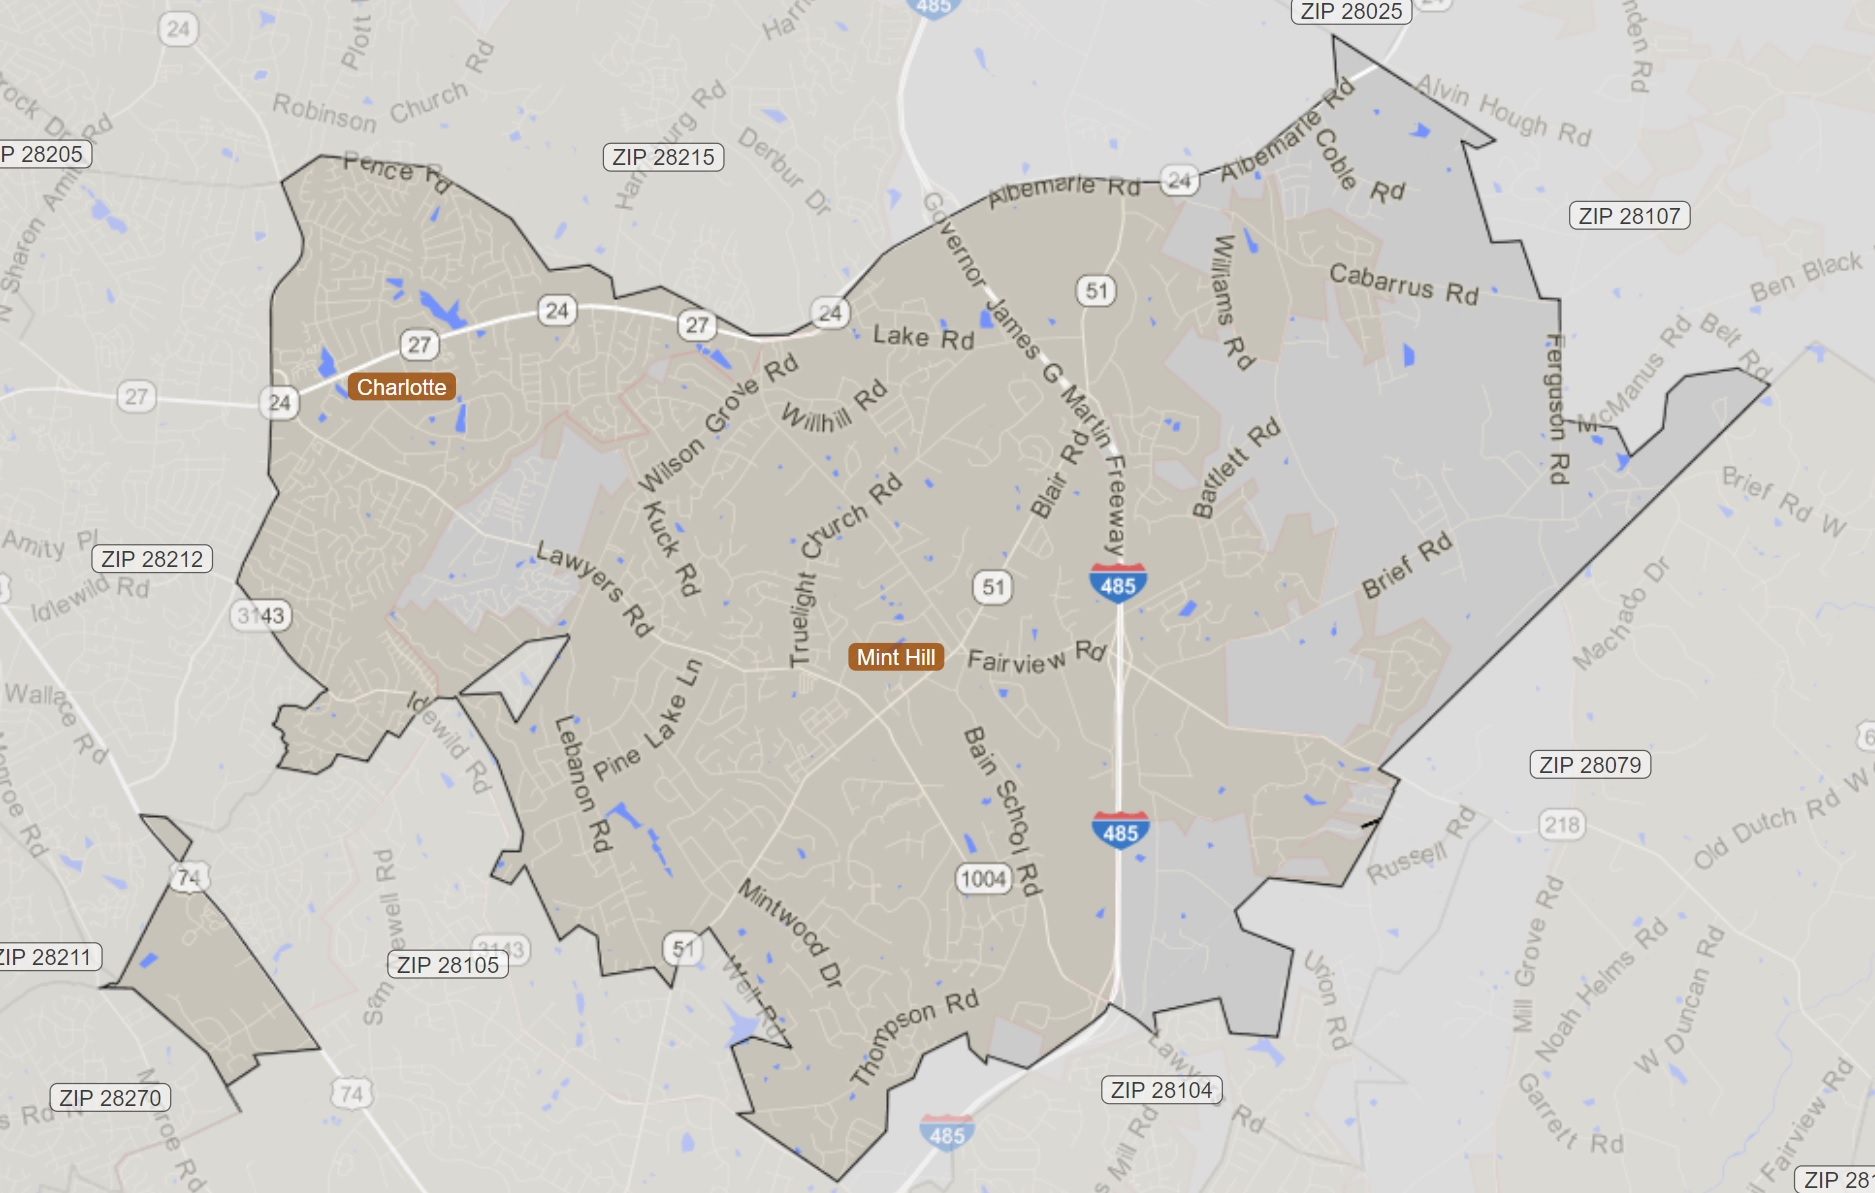 28227 Zip Code In Charlotte/Mint Hill Map